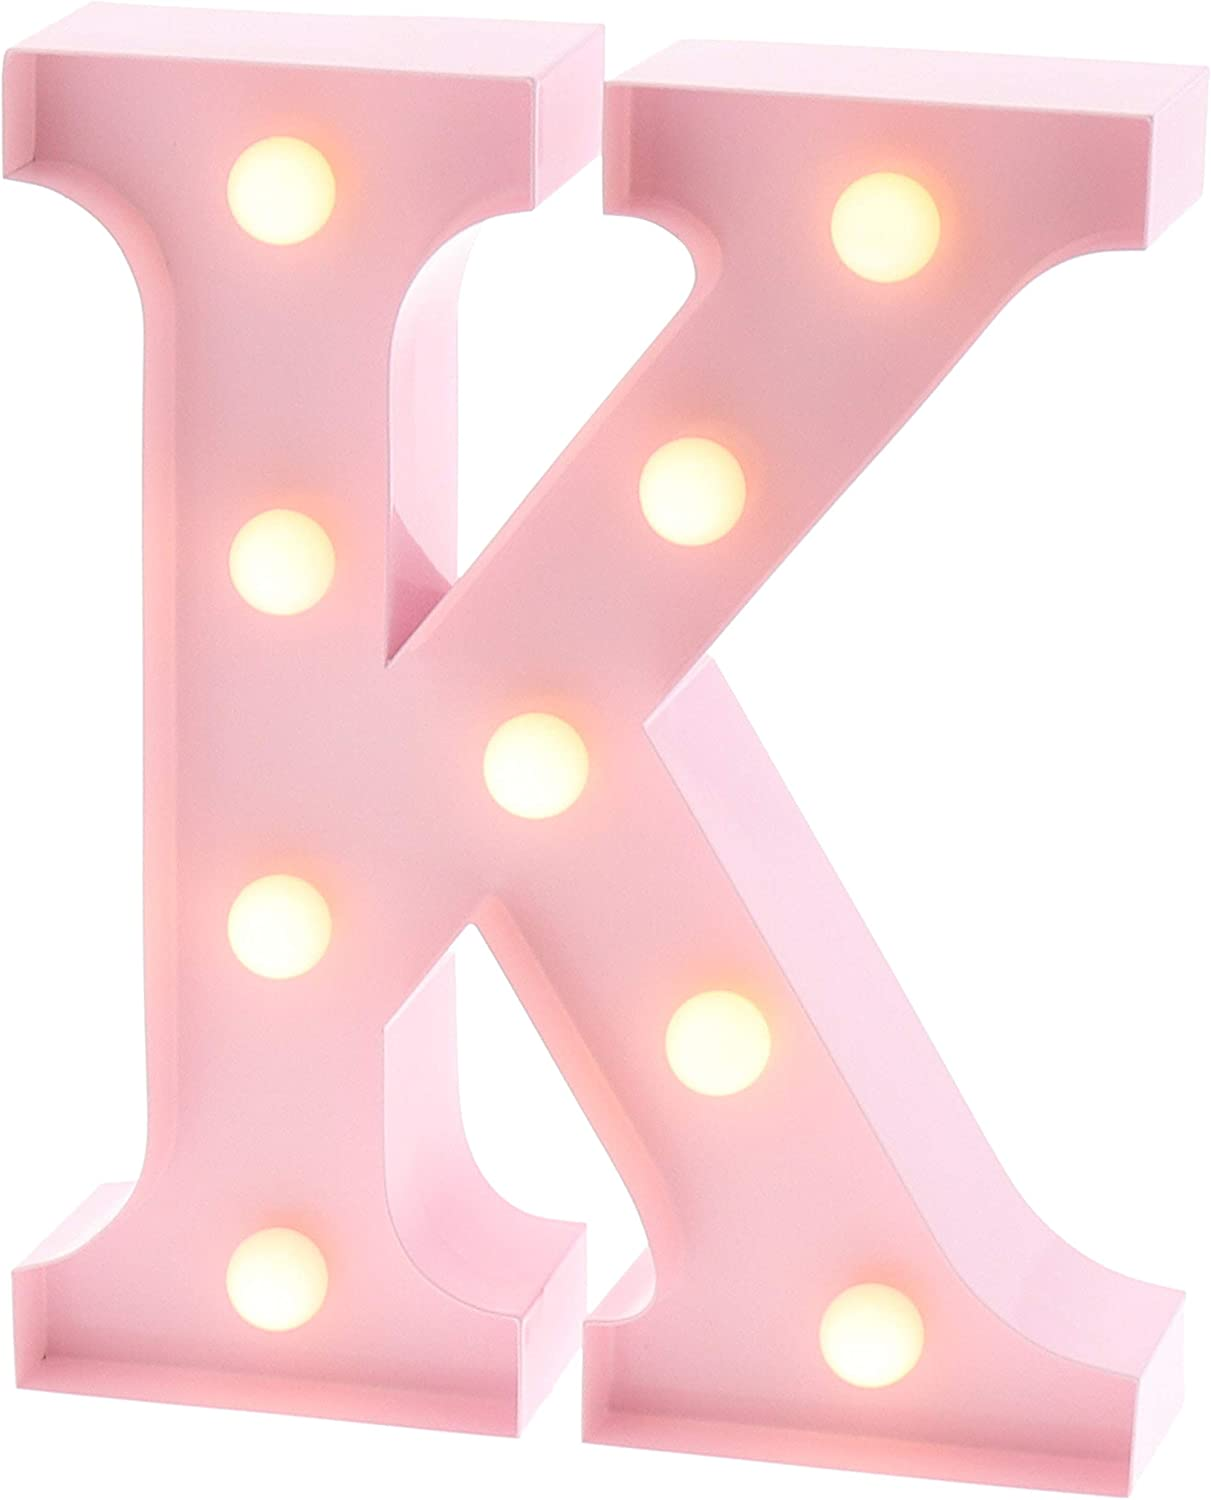 "Barnyard Designs Metal Marquee Letter K Light Up Wall Initial Nursery Letter, Home and Event Decoration 9"" (Baby Pink)"